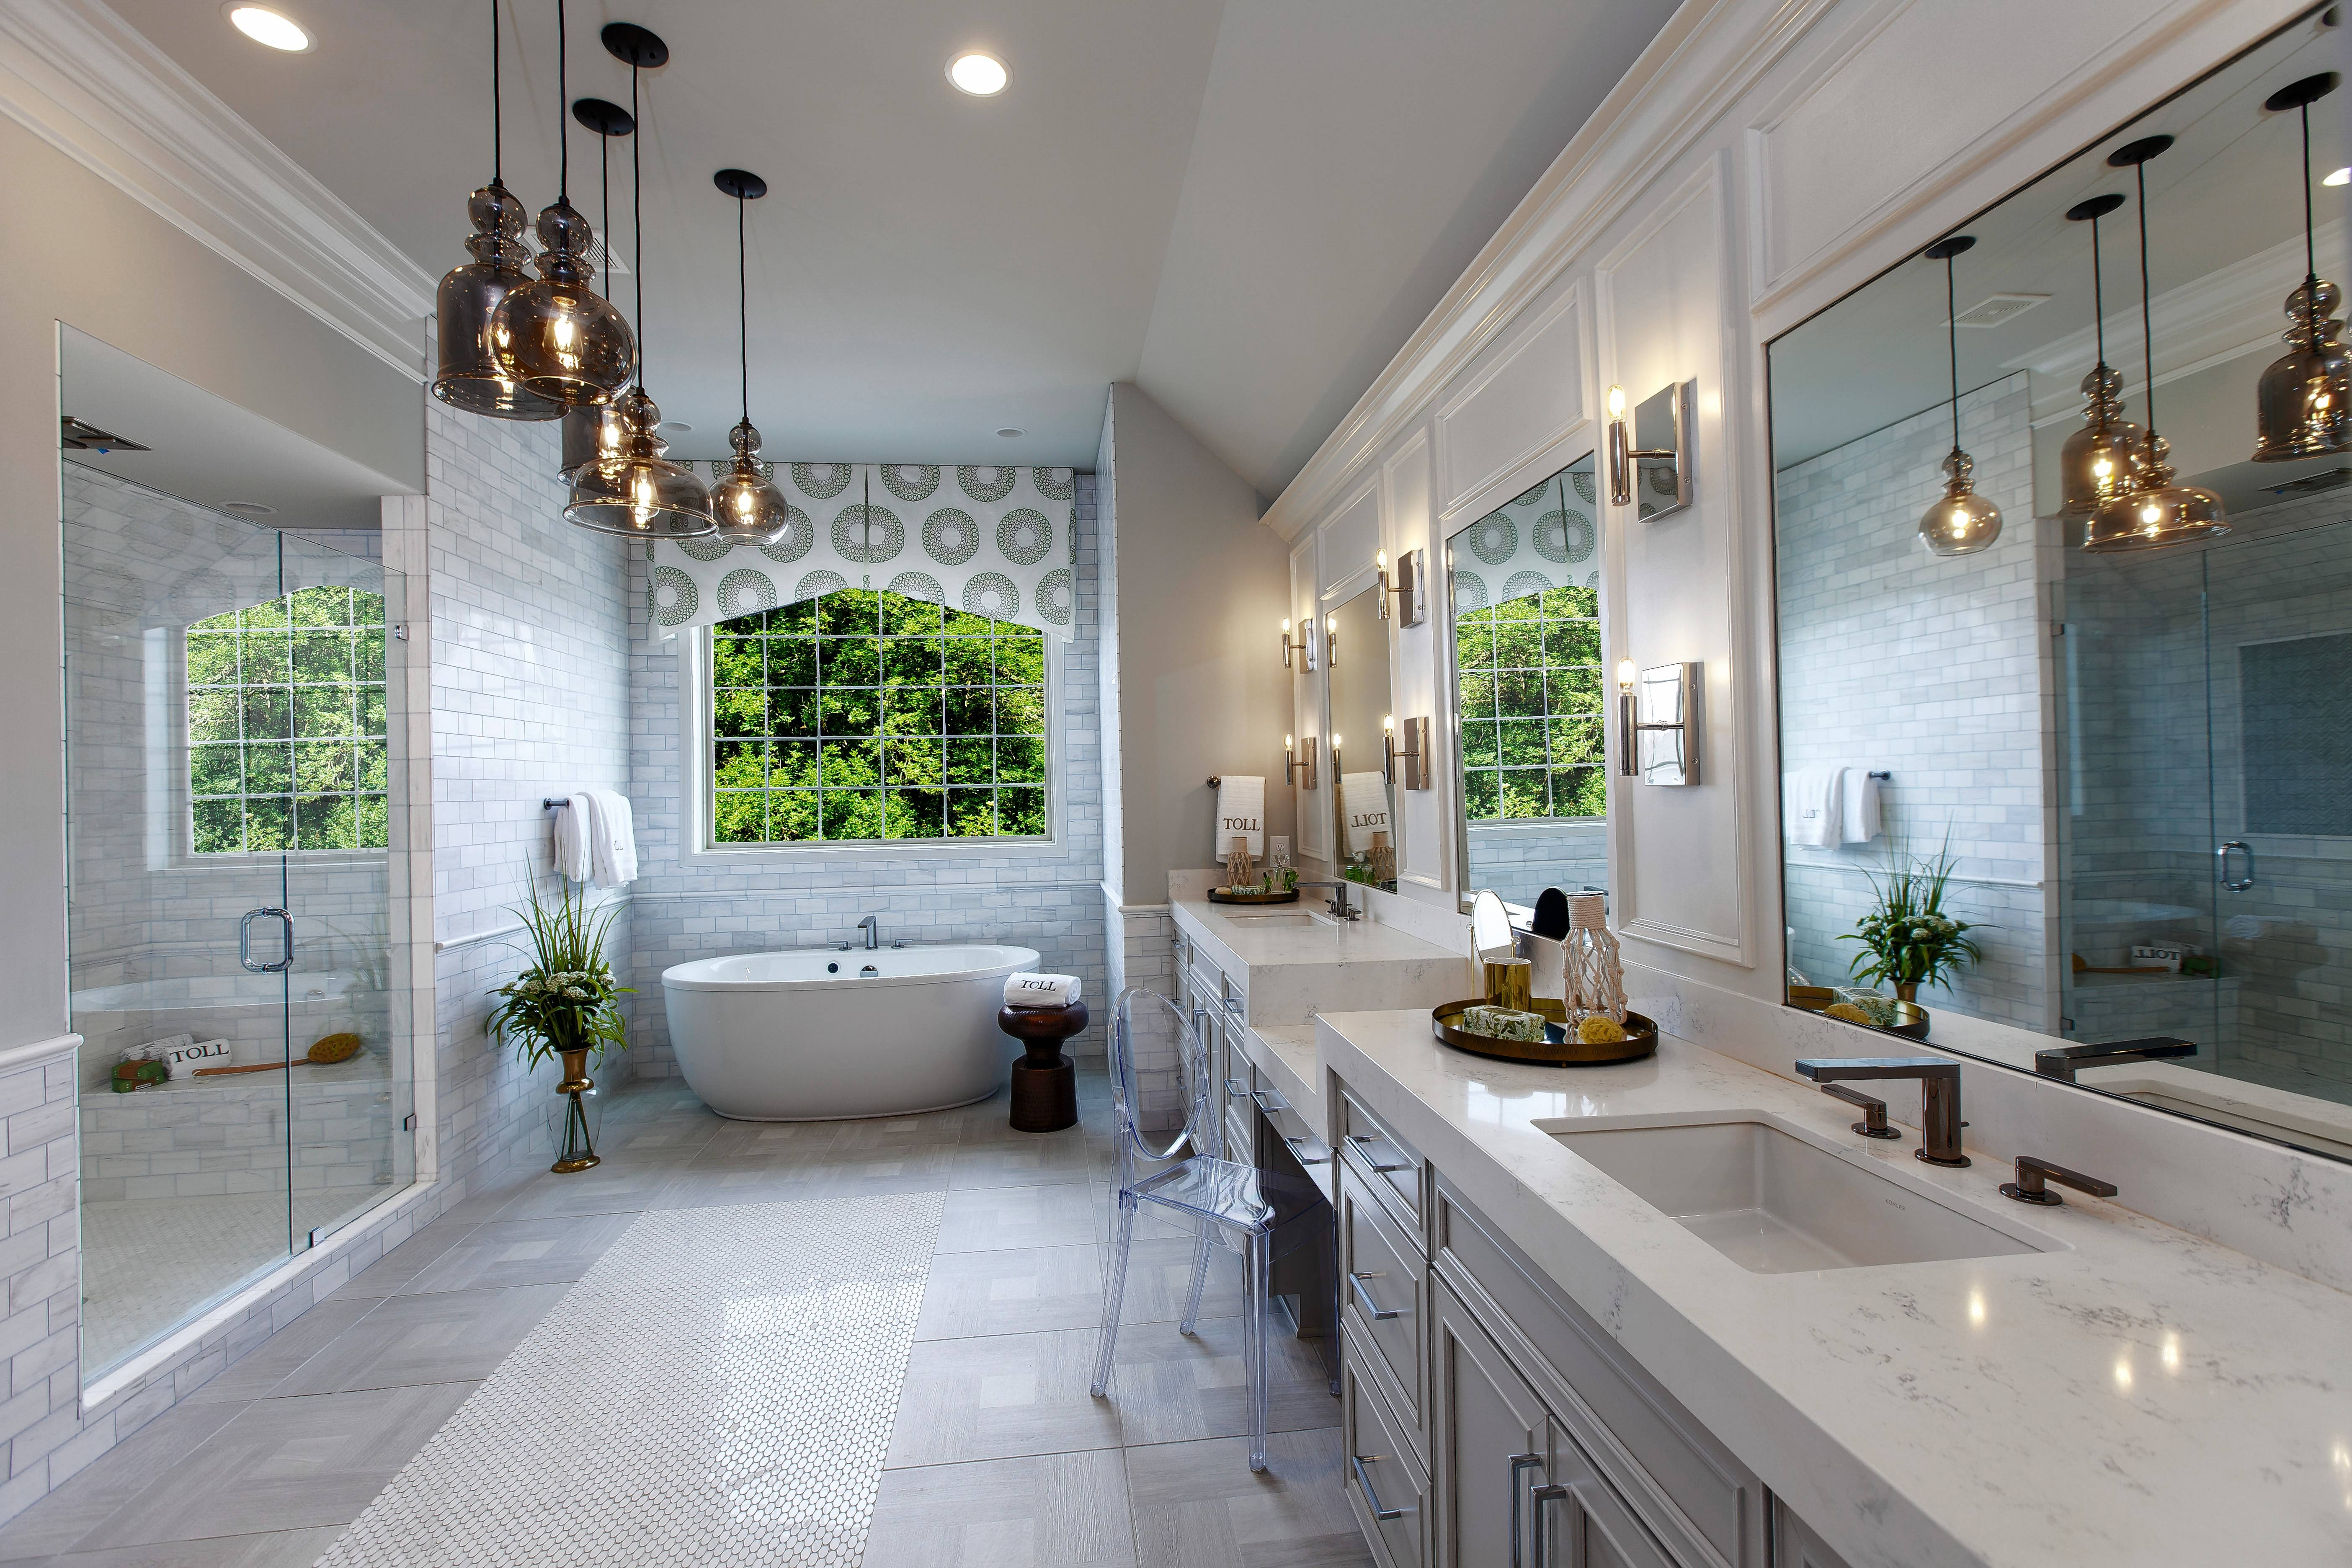 Master bathrooms get the luxury treatment in a high-end home. Toll Brothers is building The Woods of South Barrington, where homes start in the mid-$800,000s.